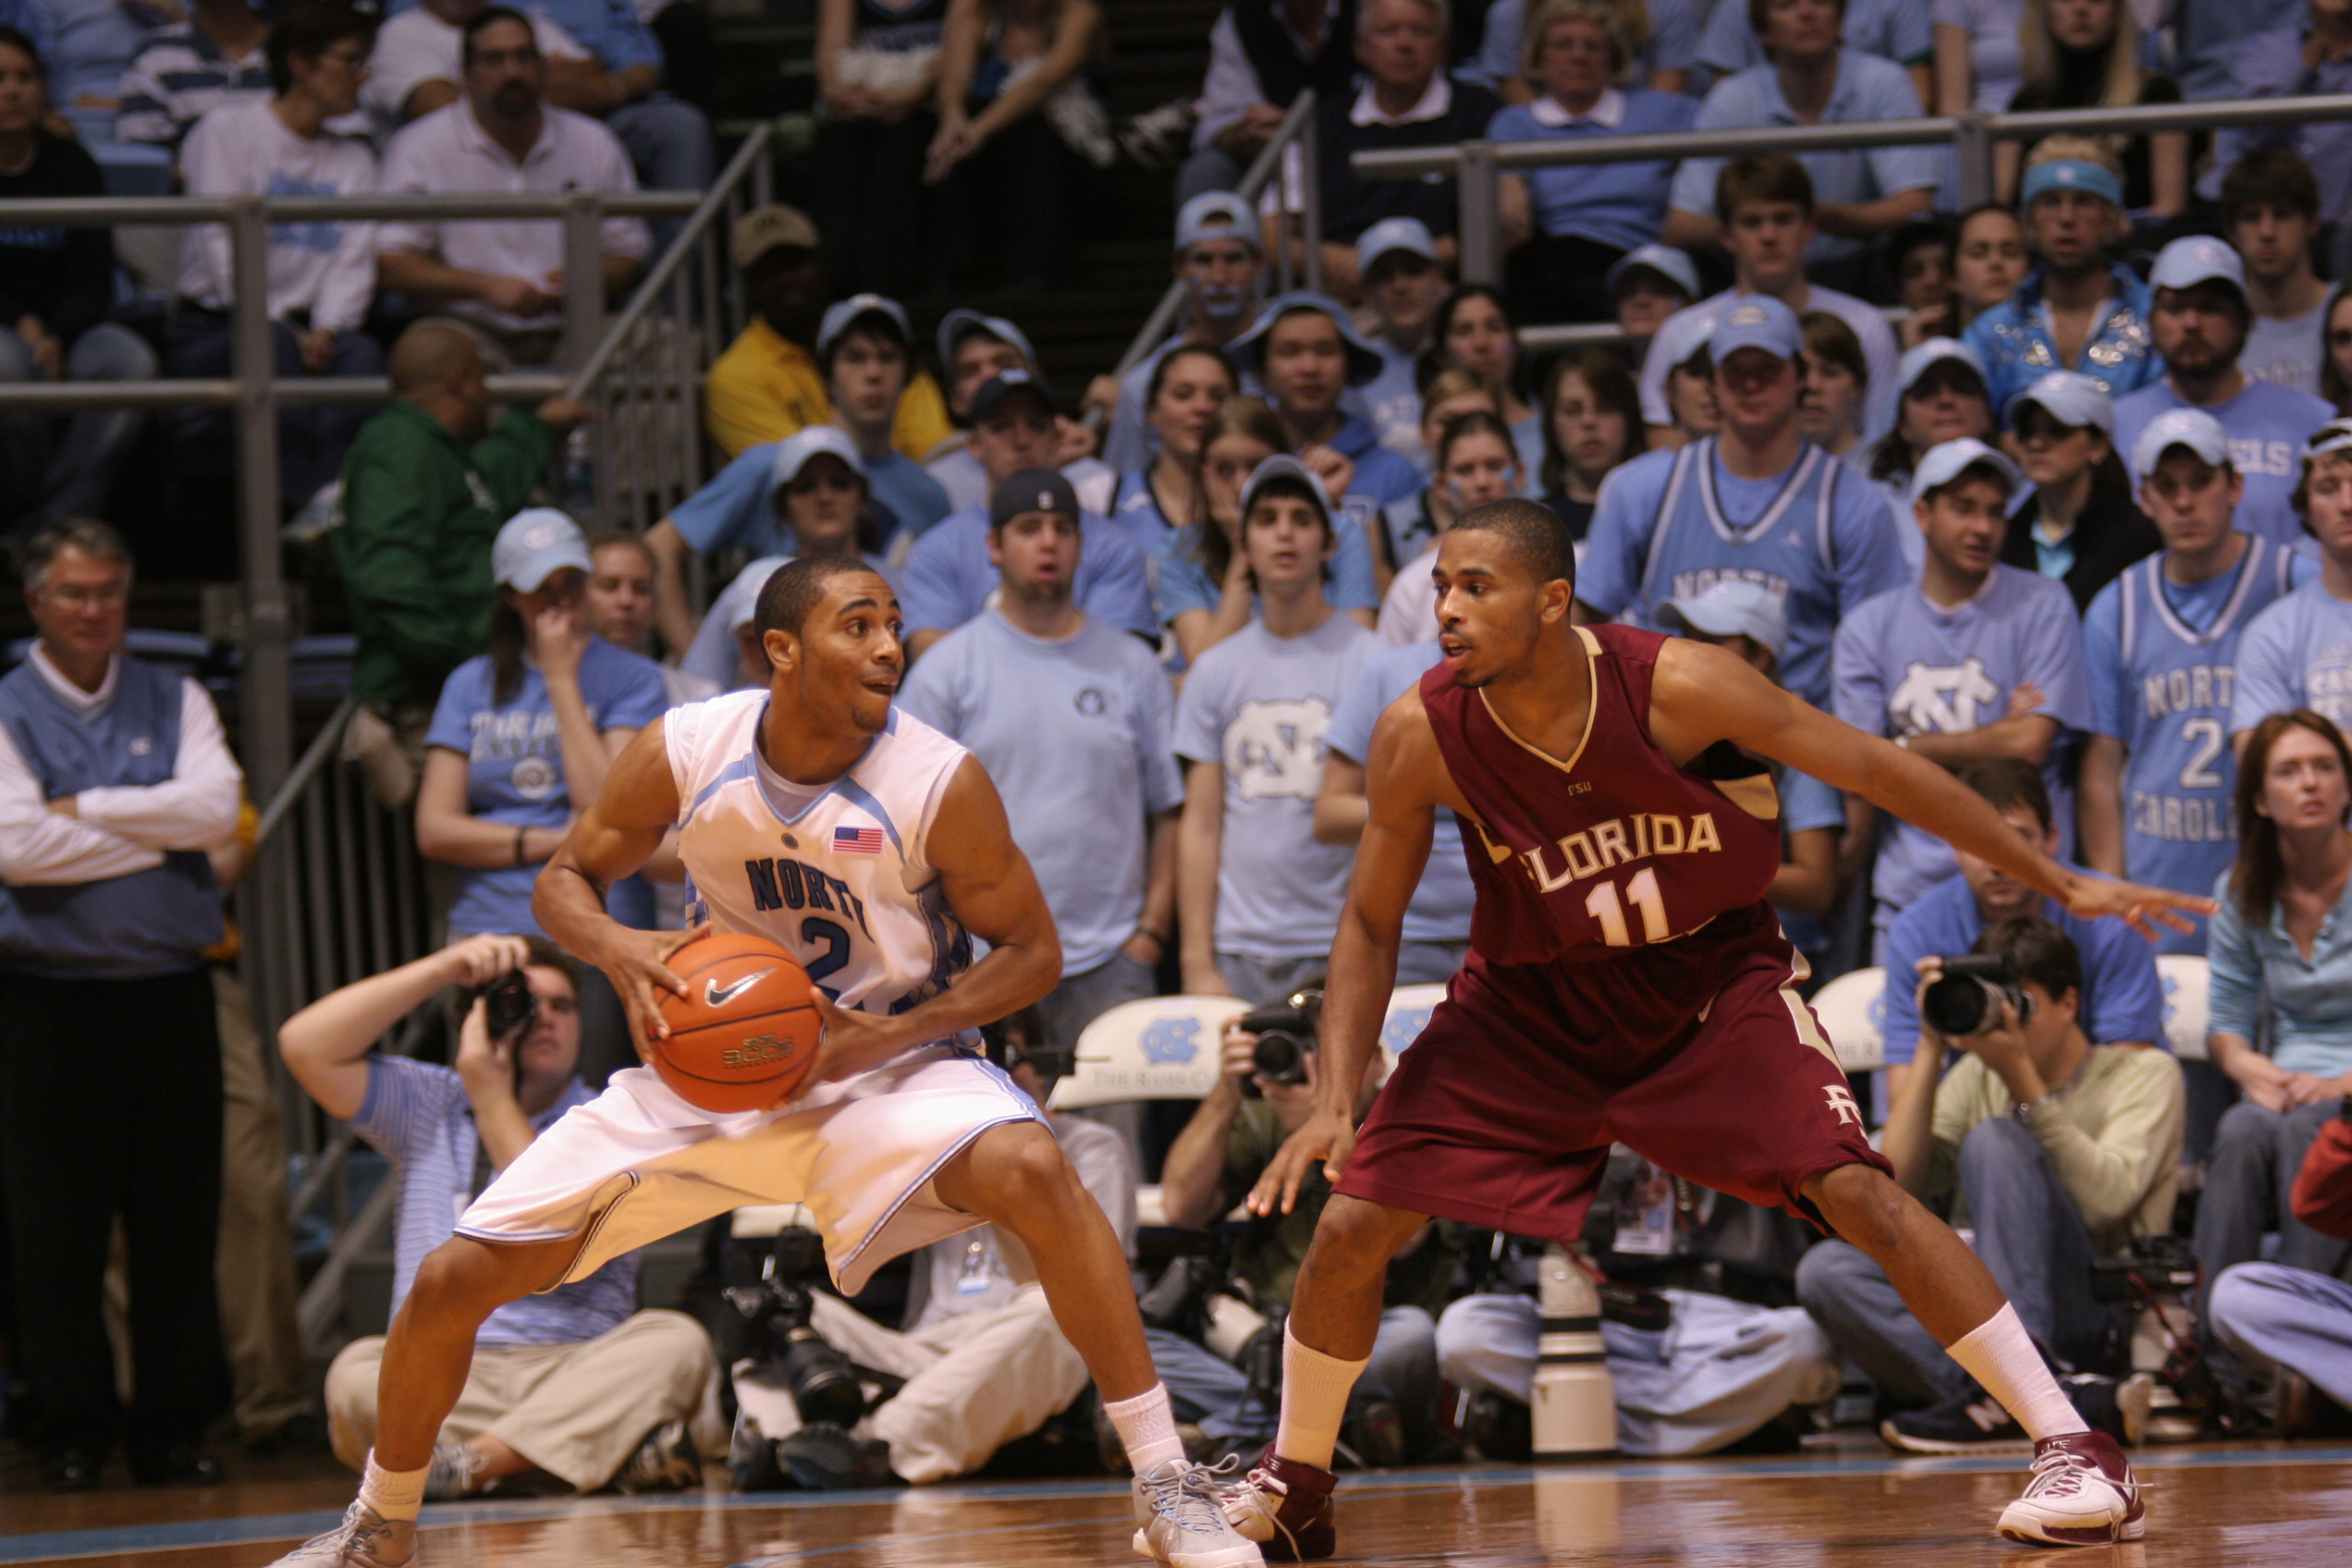 A UNC basketball player attempts to move the ball against Florida State. (credit: Courtesy of Wayne Ellington via Flickr)